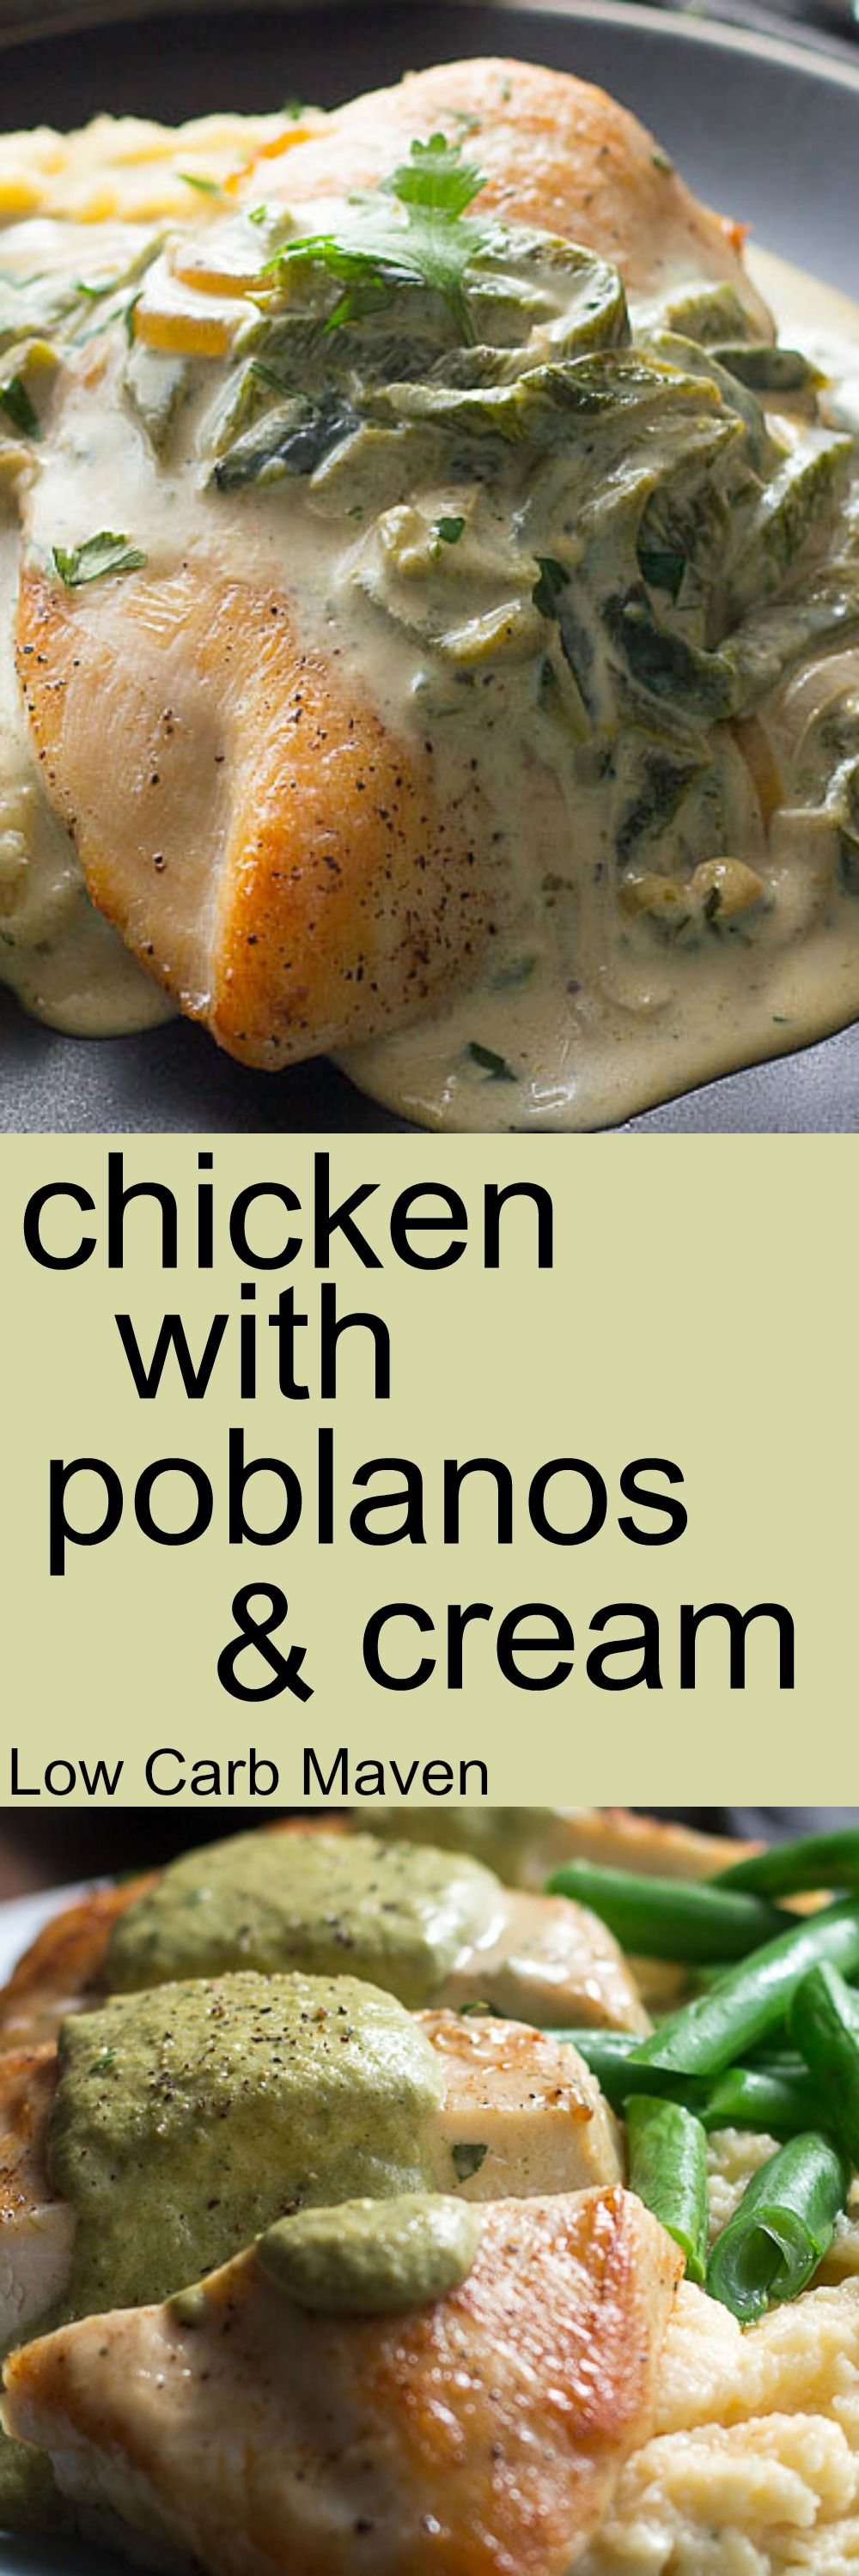 Baked Chicken Recipes Parmesan Low Carb